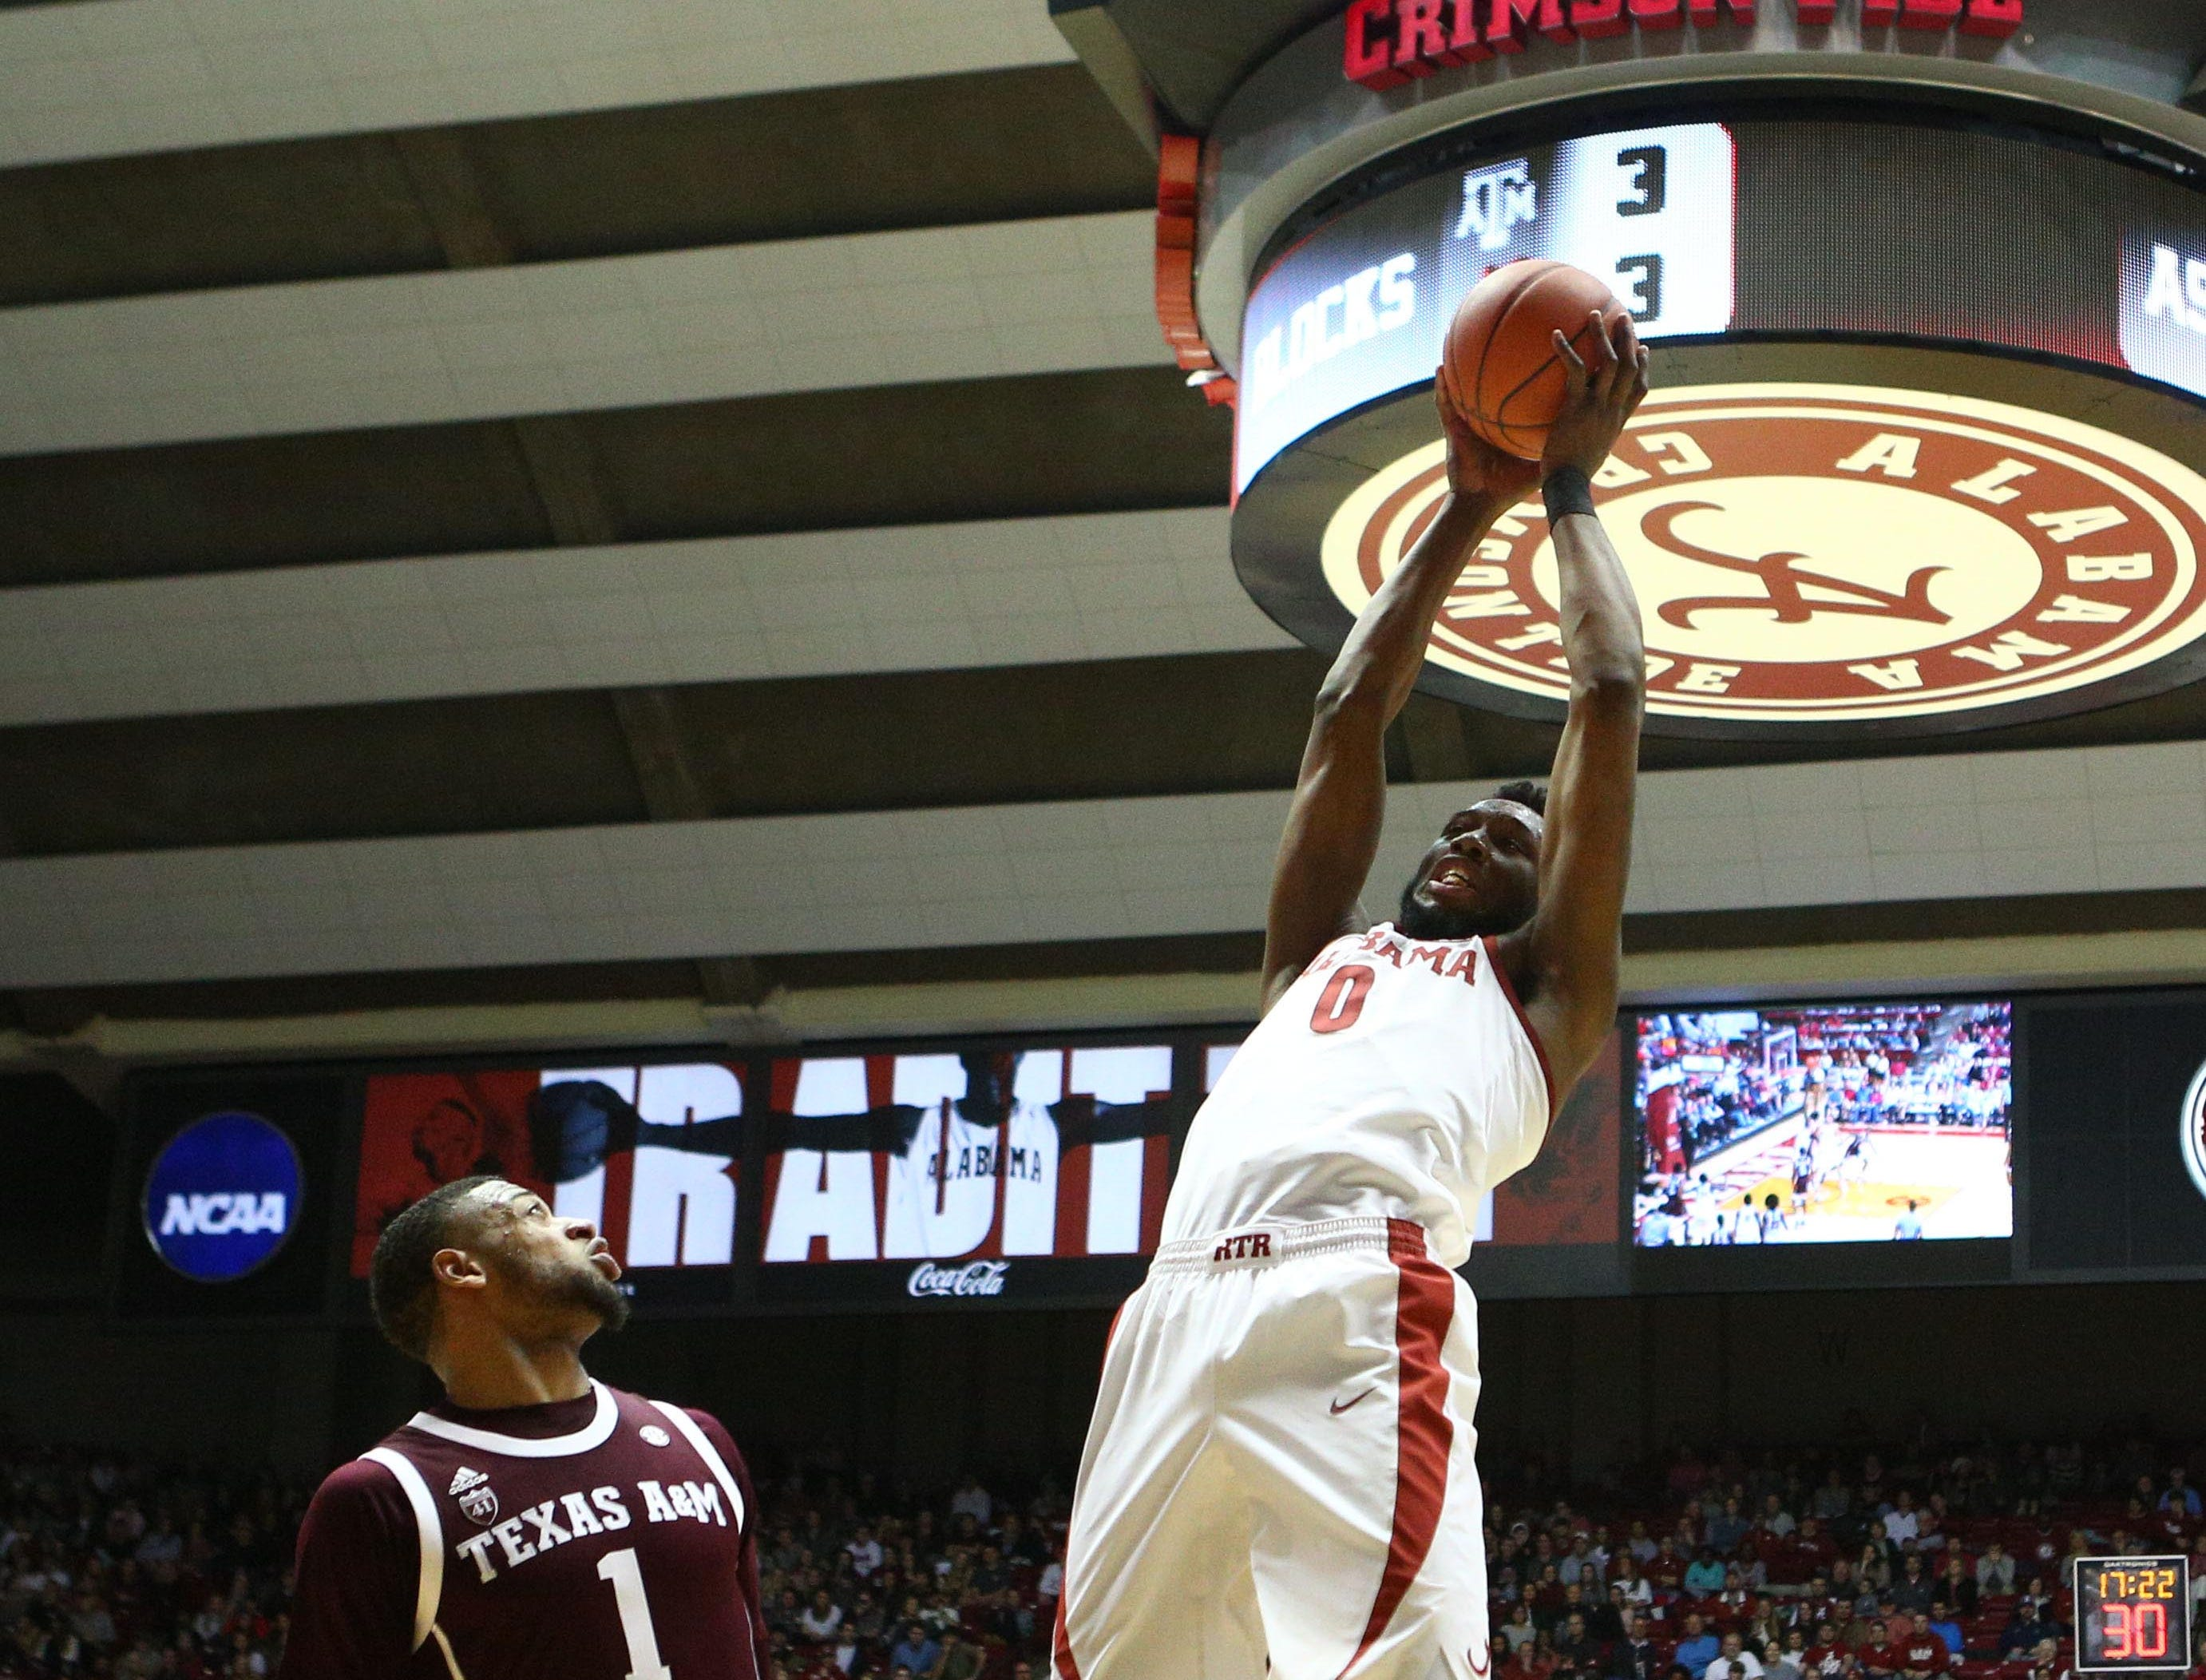 Jan 12, 2019; Tuscaloosa, AL, USA; Alabama Crimson Tide forward Donta Hall (0) grabs a rebound against Texas A&M Aggies during the second half at Coleman Coliseum. Mandatory Credit: Marvin Gentry-USA TODAY Sports